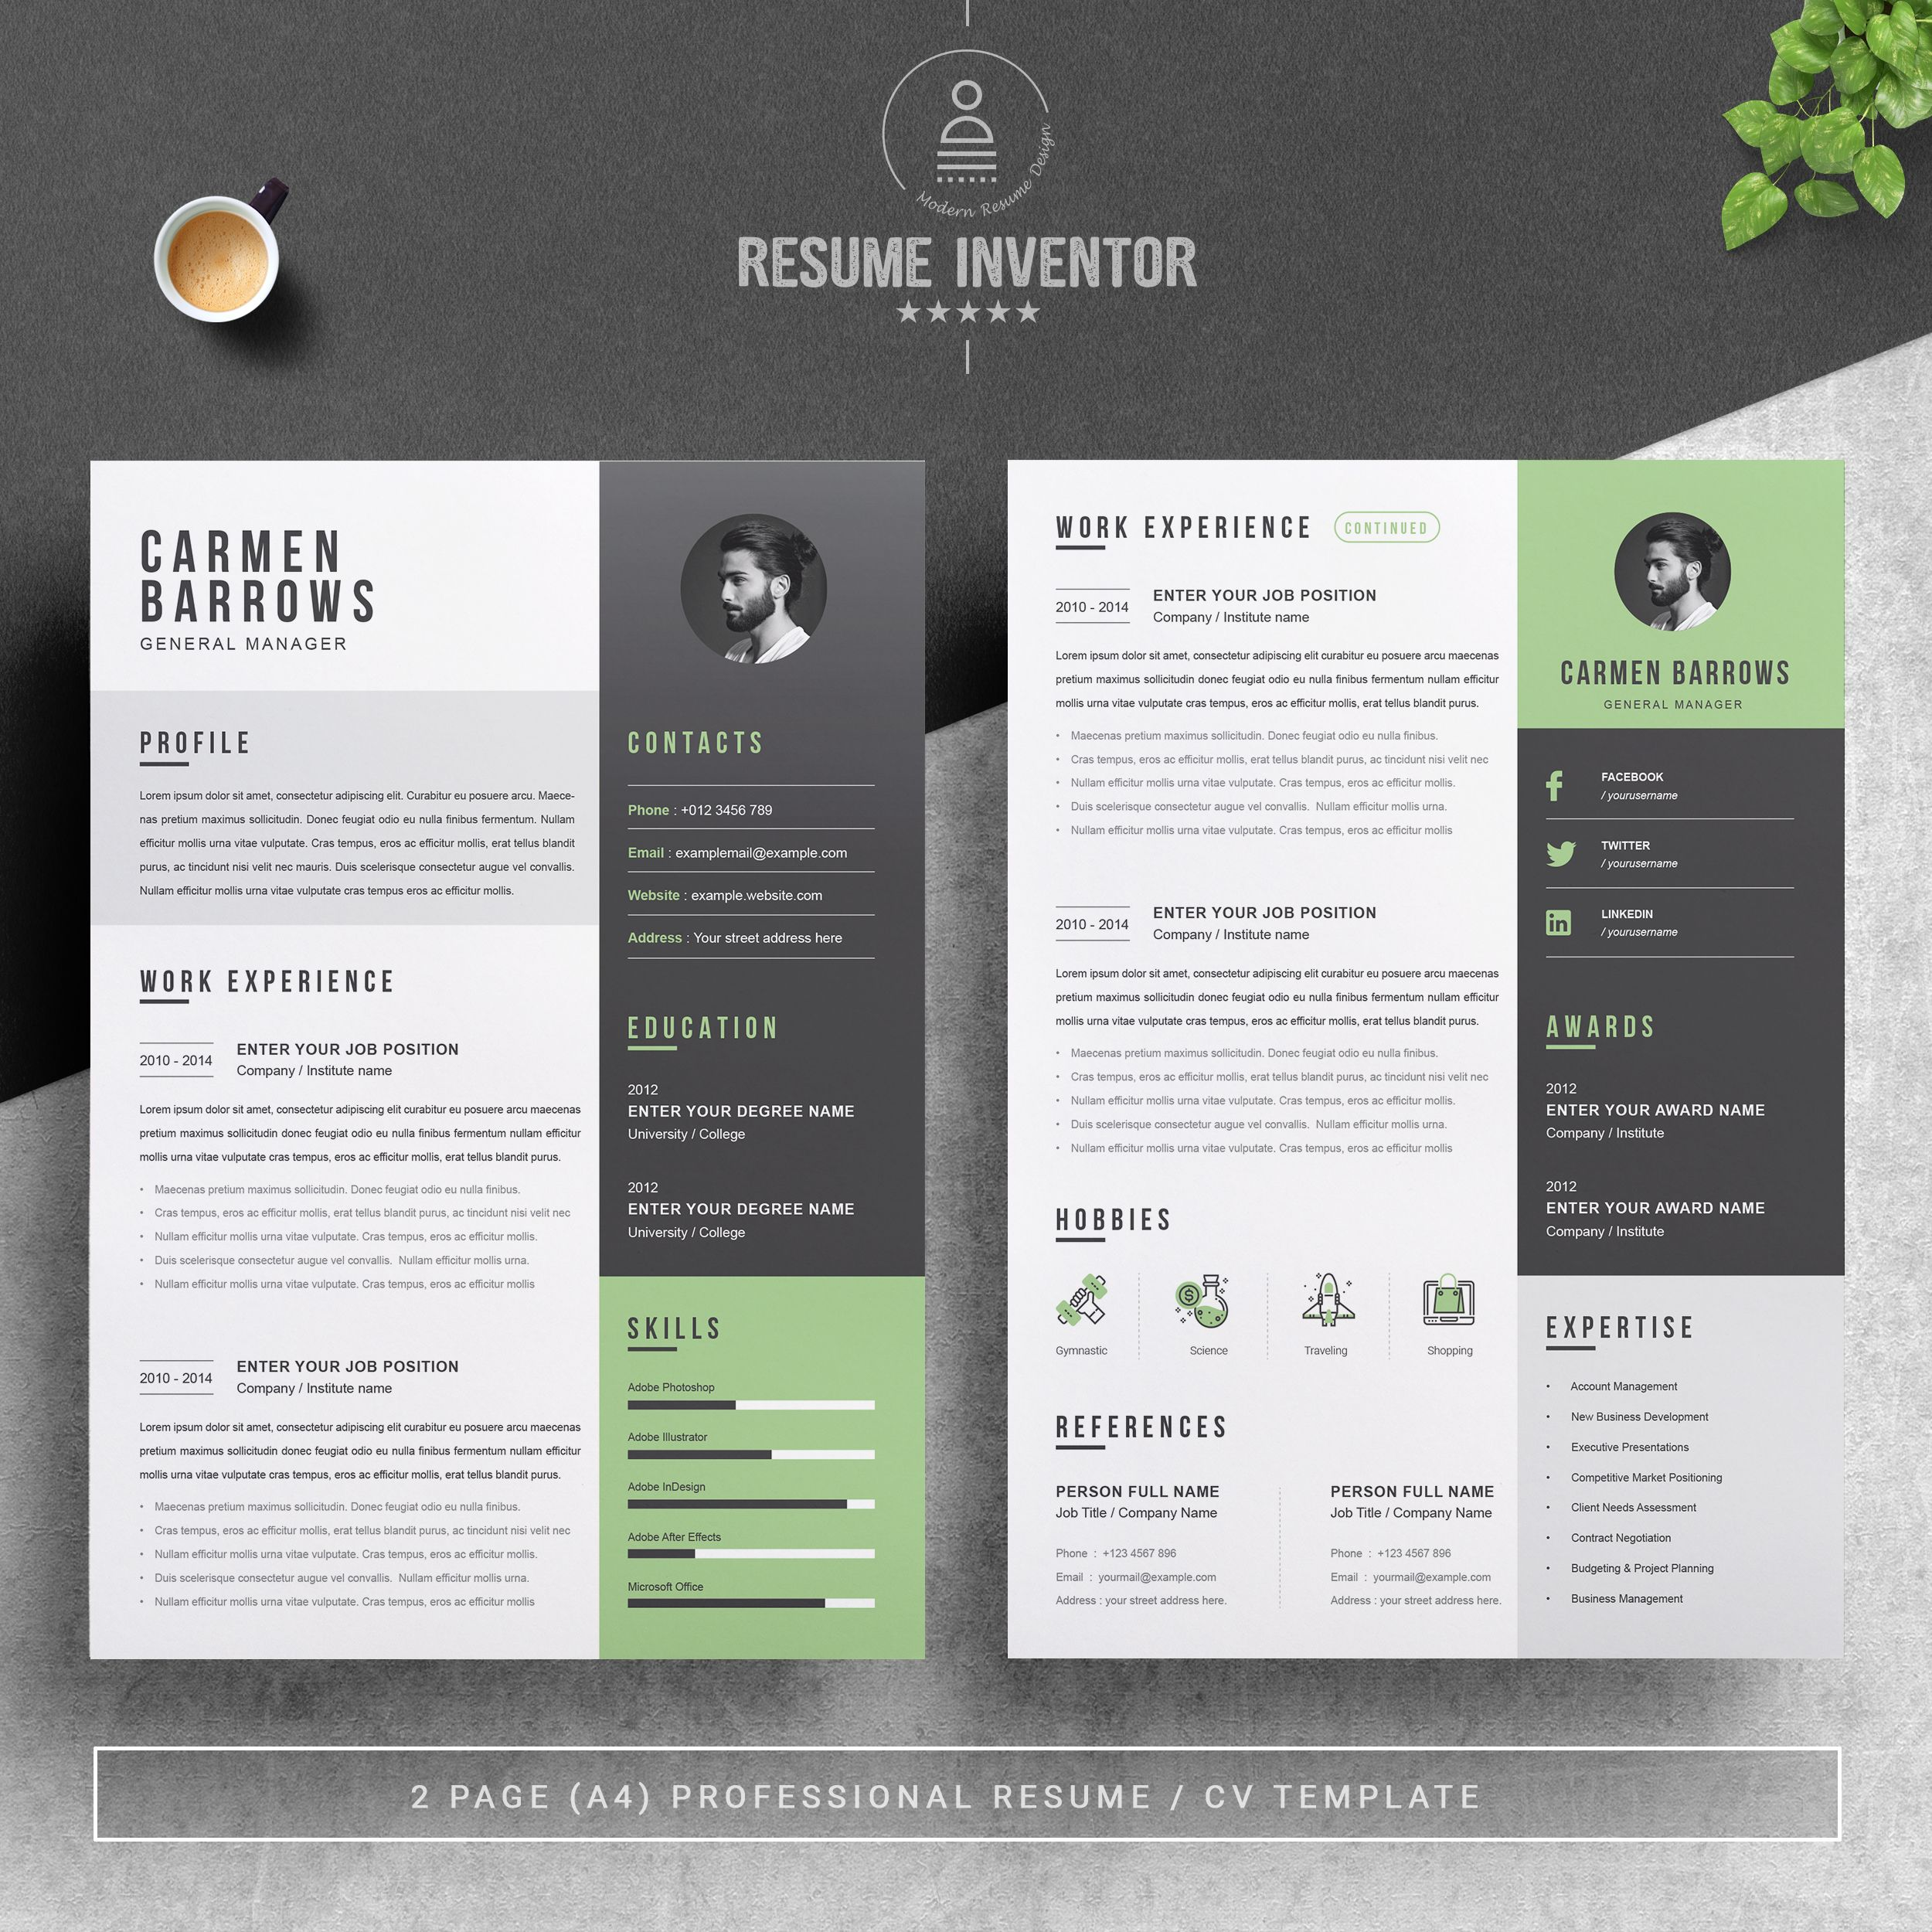 best free resume templates for architects arch2o the accenture template jeff bezos Resume The Best Free Resume Templates